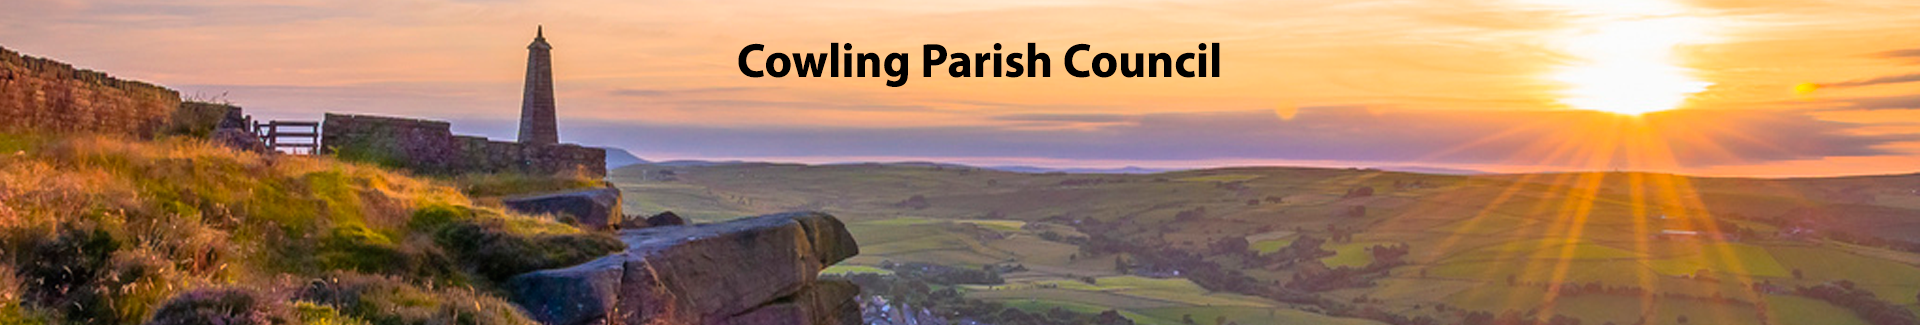 cowling parish council